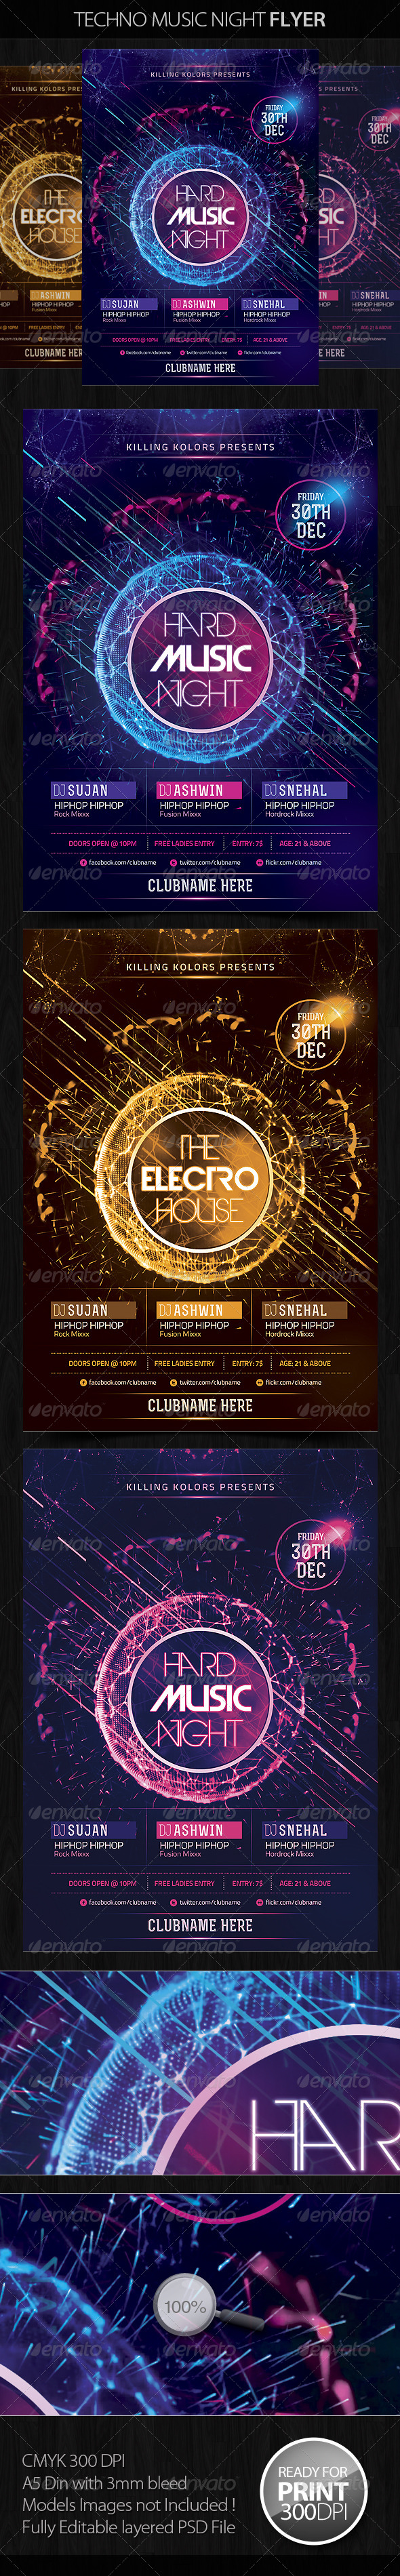 Techno Music Night Flyer - Flyers Print Templates